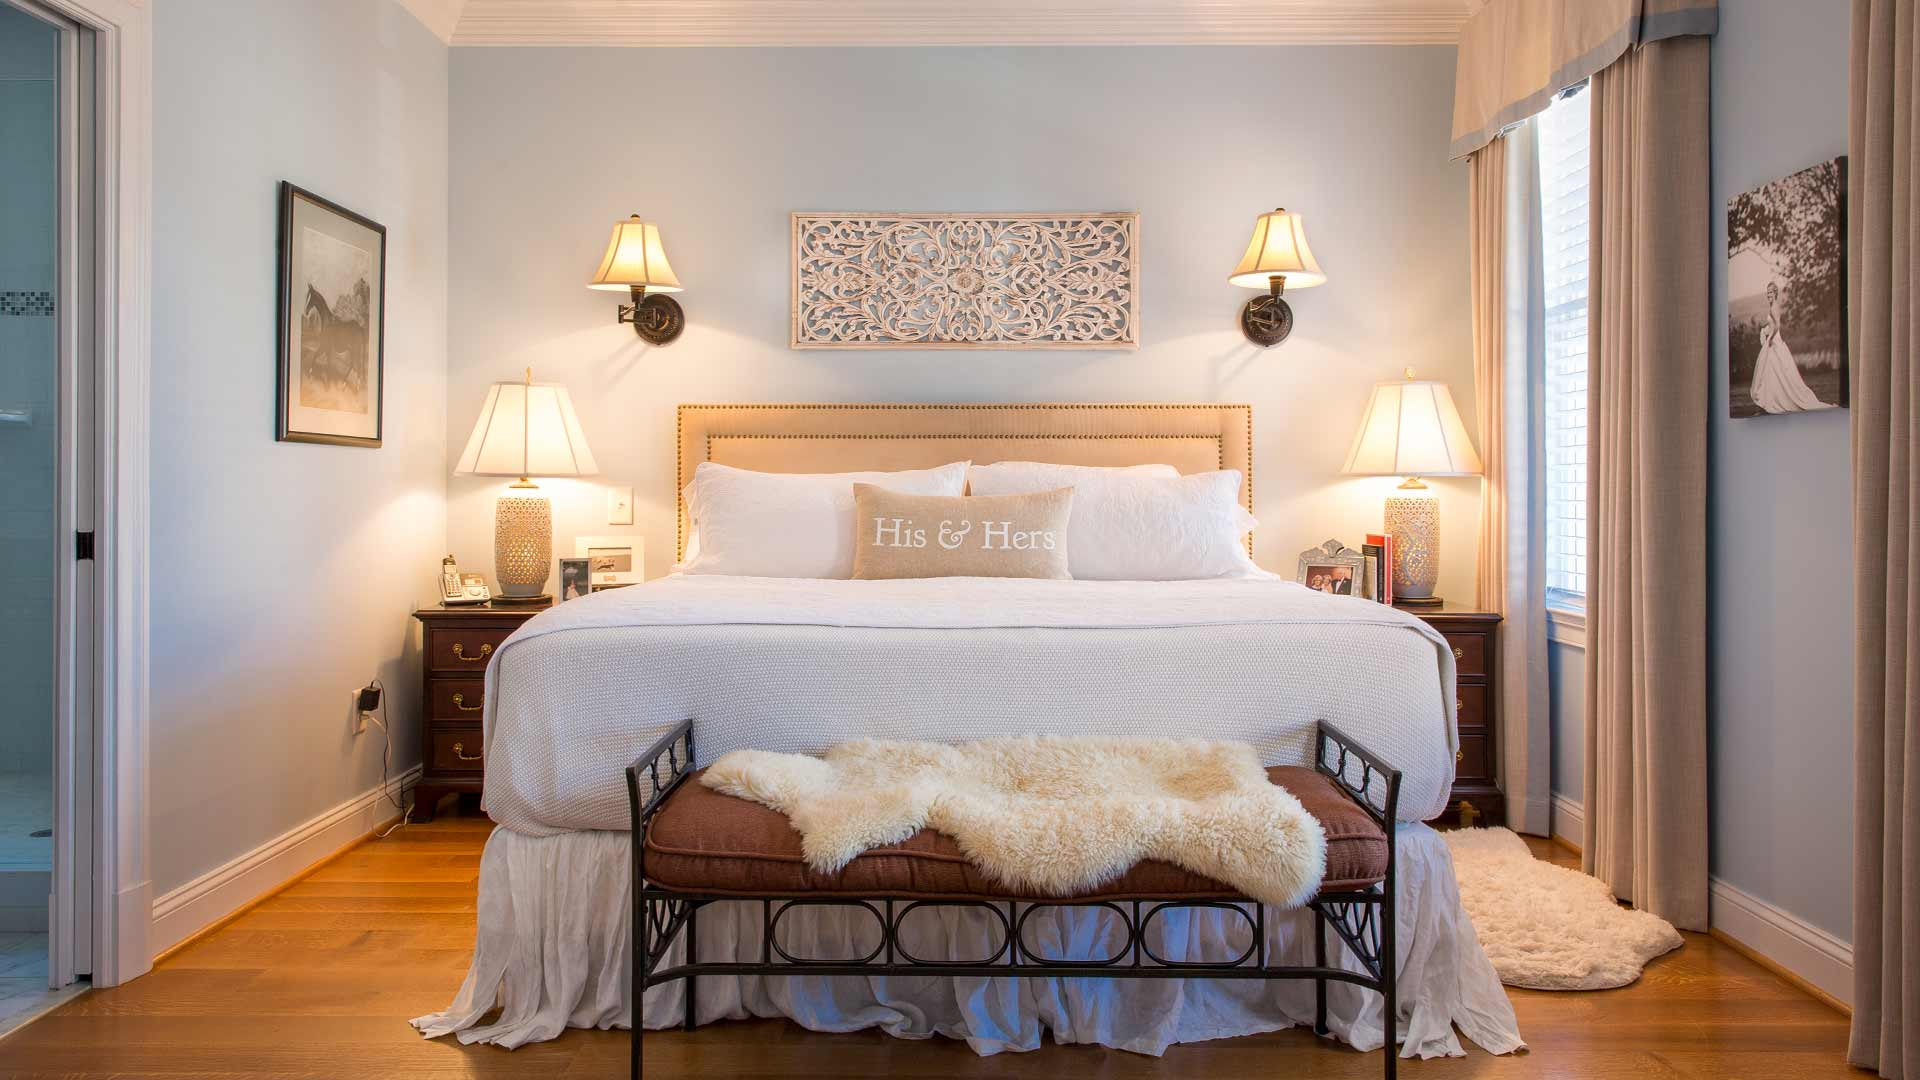 The Kittrell Company Bedroom Design